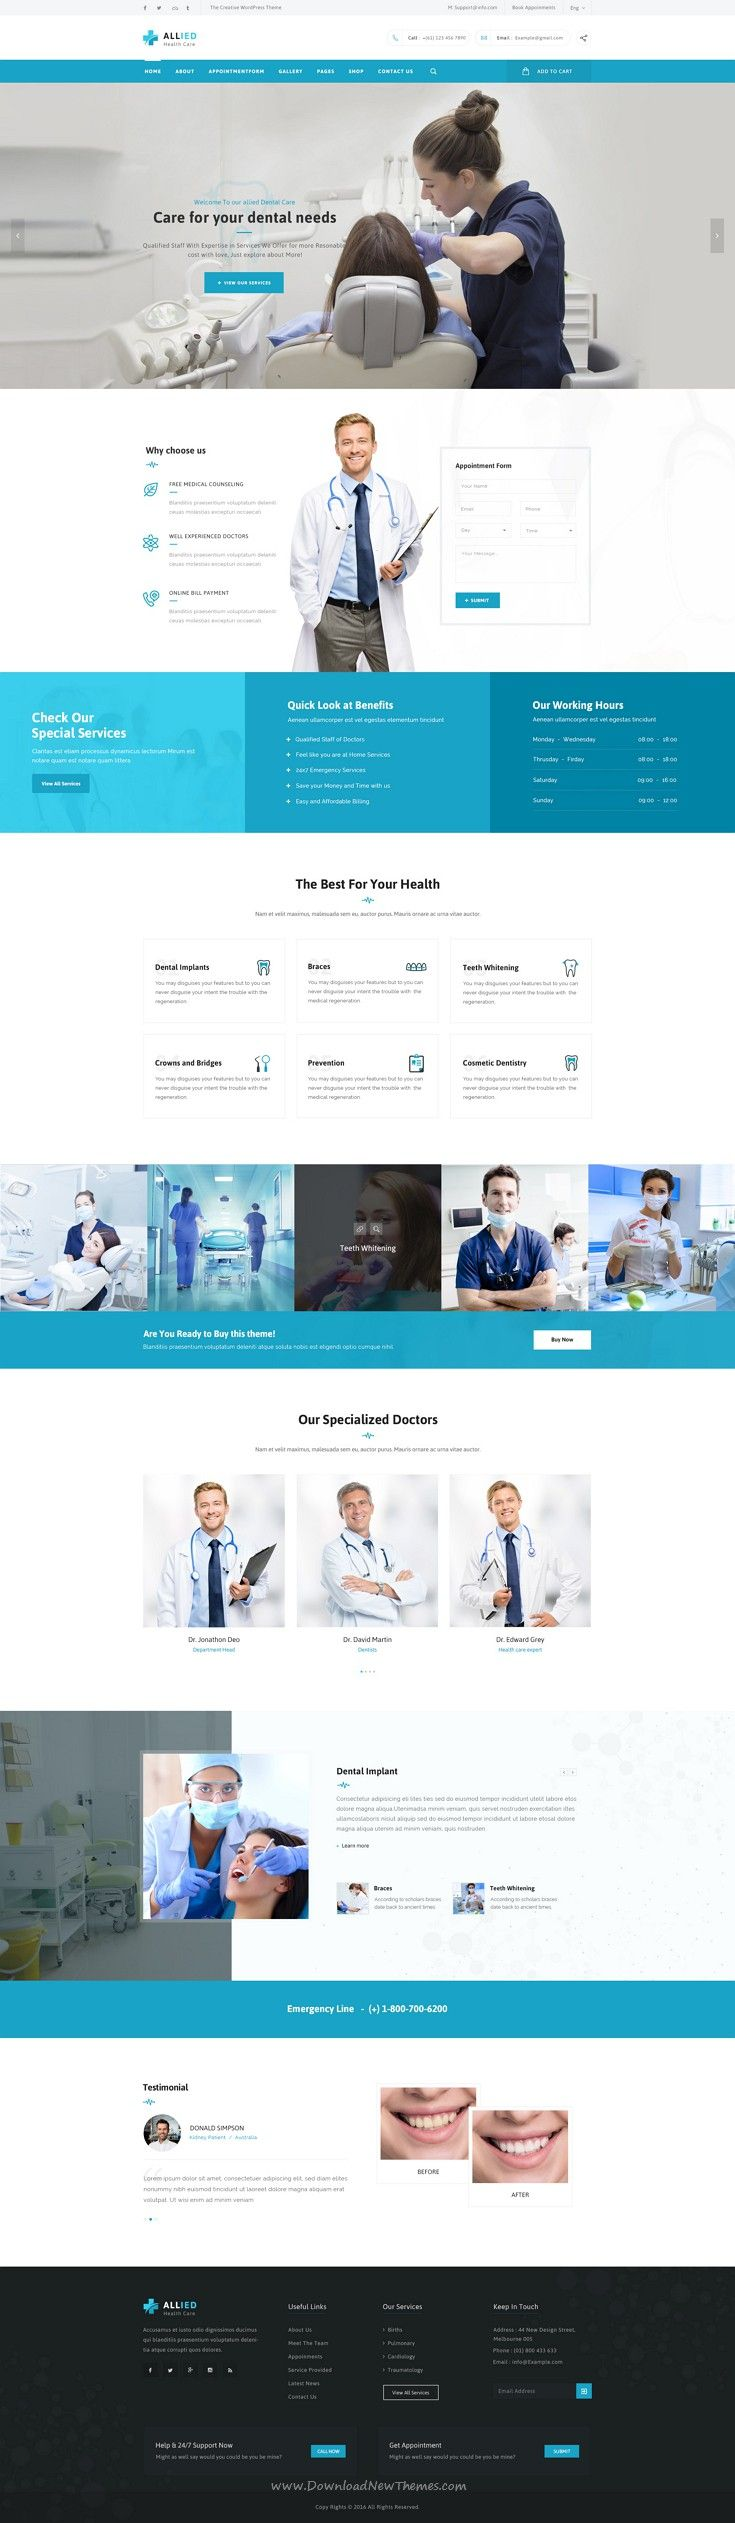 Allied Health Care is beautiful Medical website PSD Template. #dental #dentist #psdtheme Download Now!